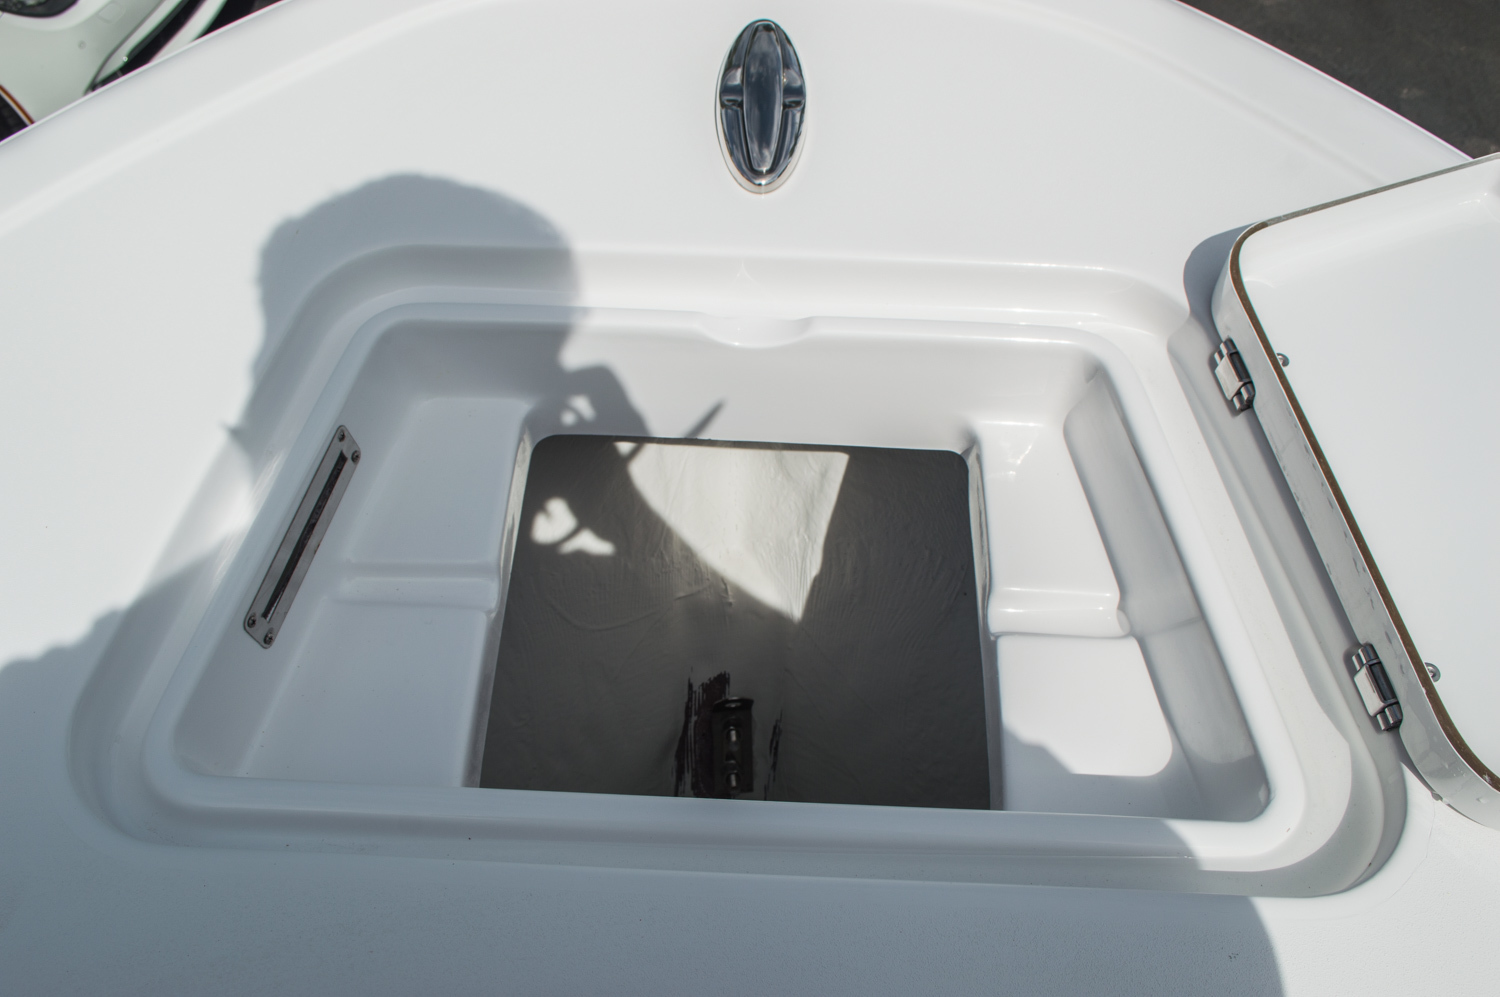 Thumbnail 15 for New 2016 Sportsman Open 212 Center Console boat for sale in Miami, FL